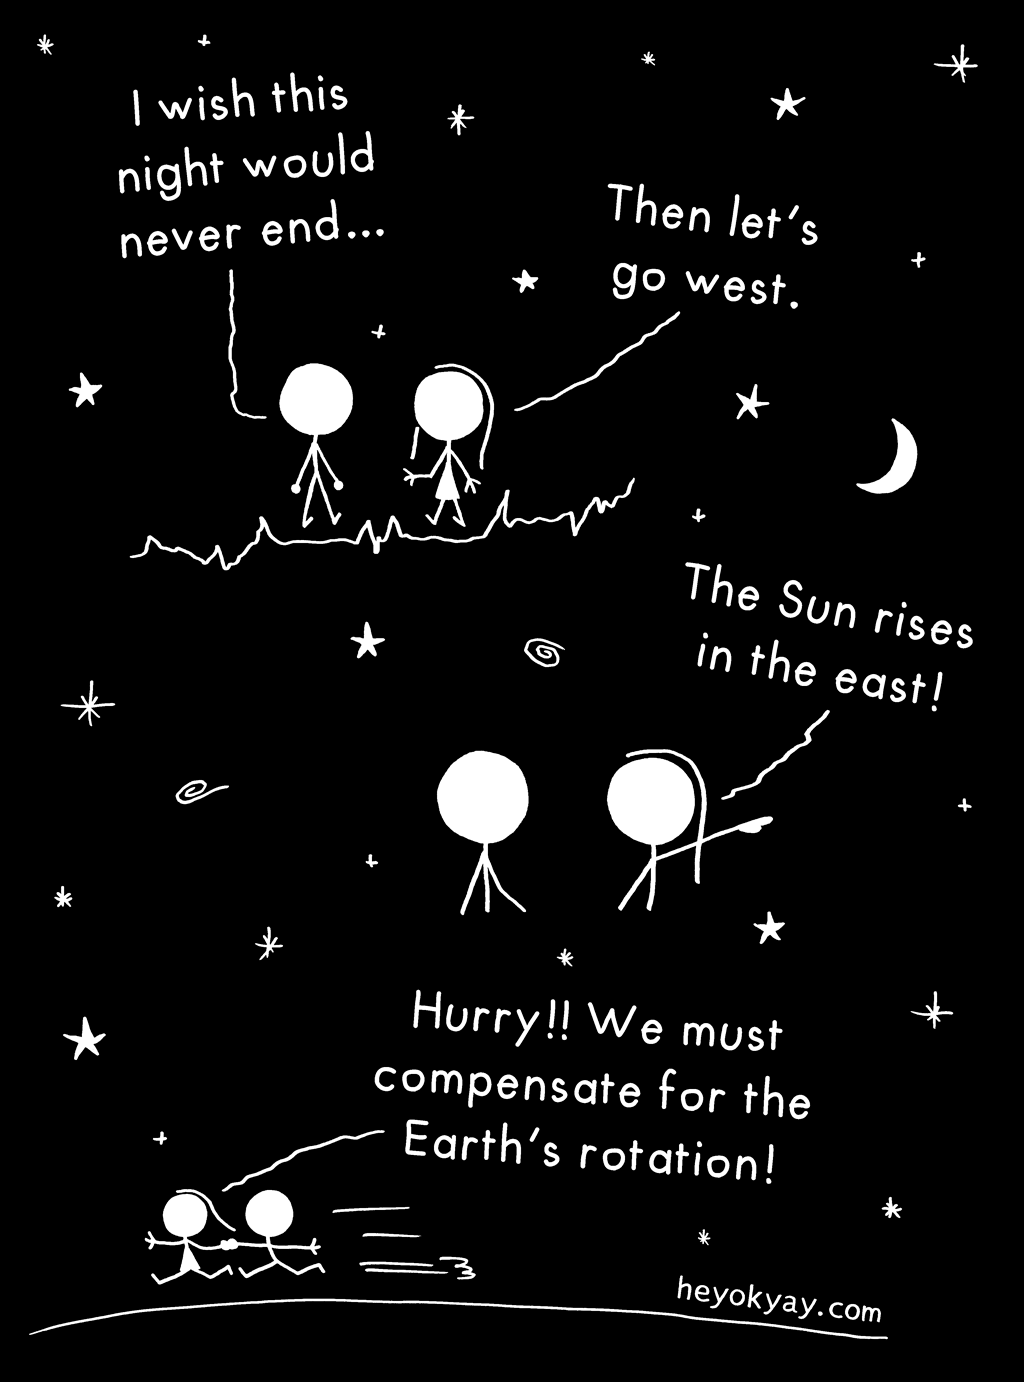 Summer night | Hey ok yay? | I wish this night would never end. Then let's go west! The Sun rises in the east. Hurry! We must compensate for the earth's rotation! | universe, sunrise, stars, romance, astronomy